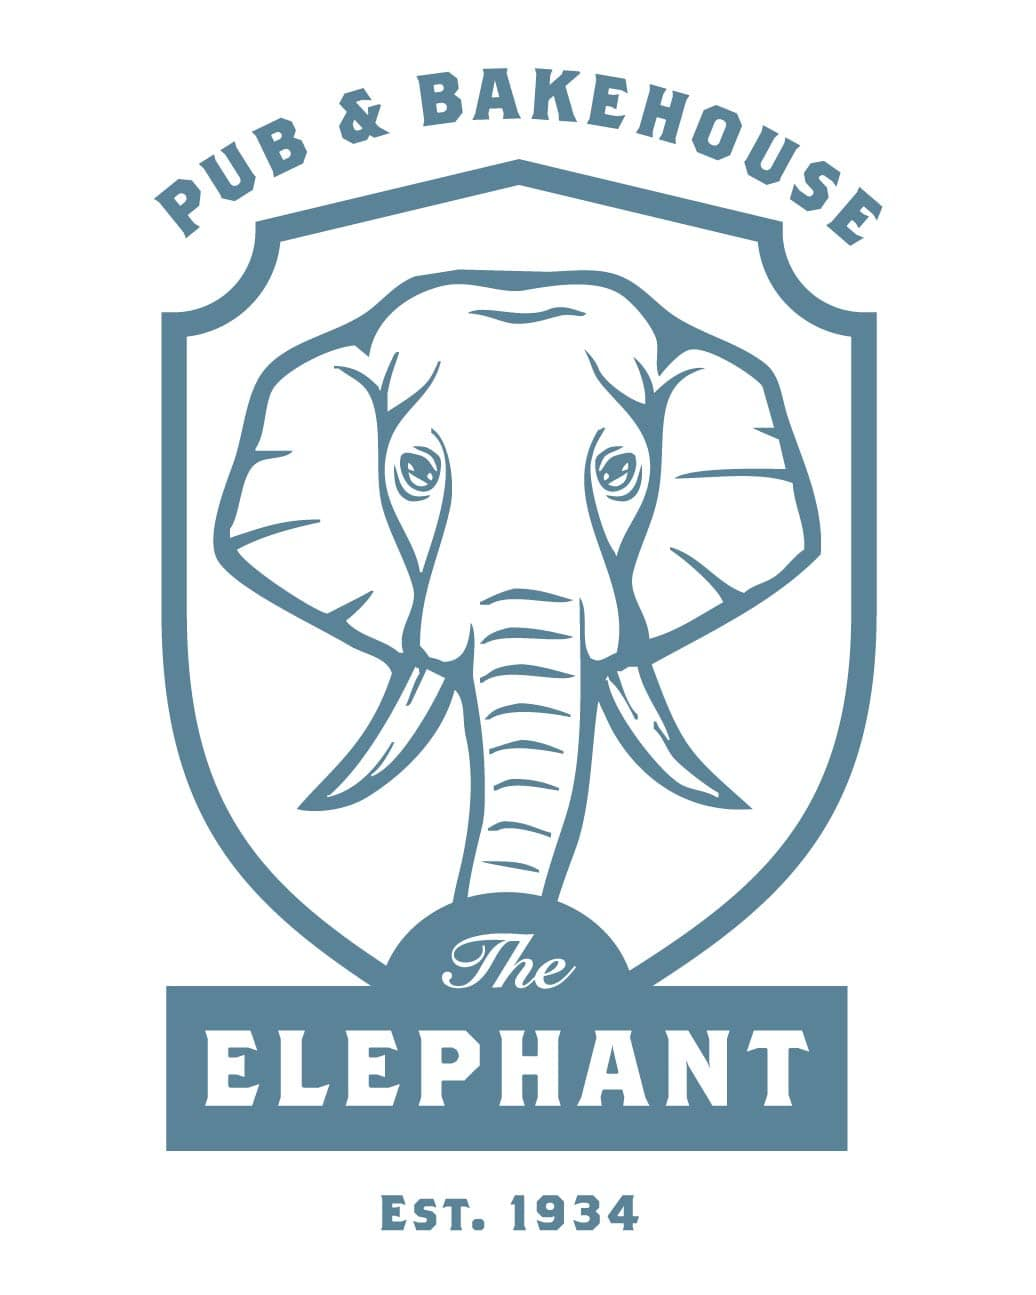 The Elephant Pub and Bakehouse